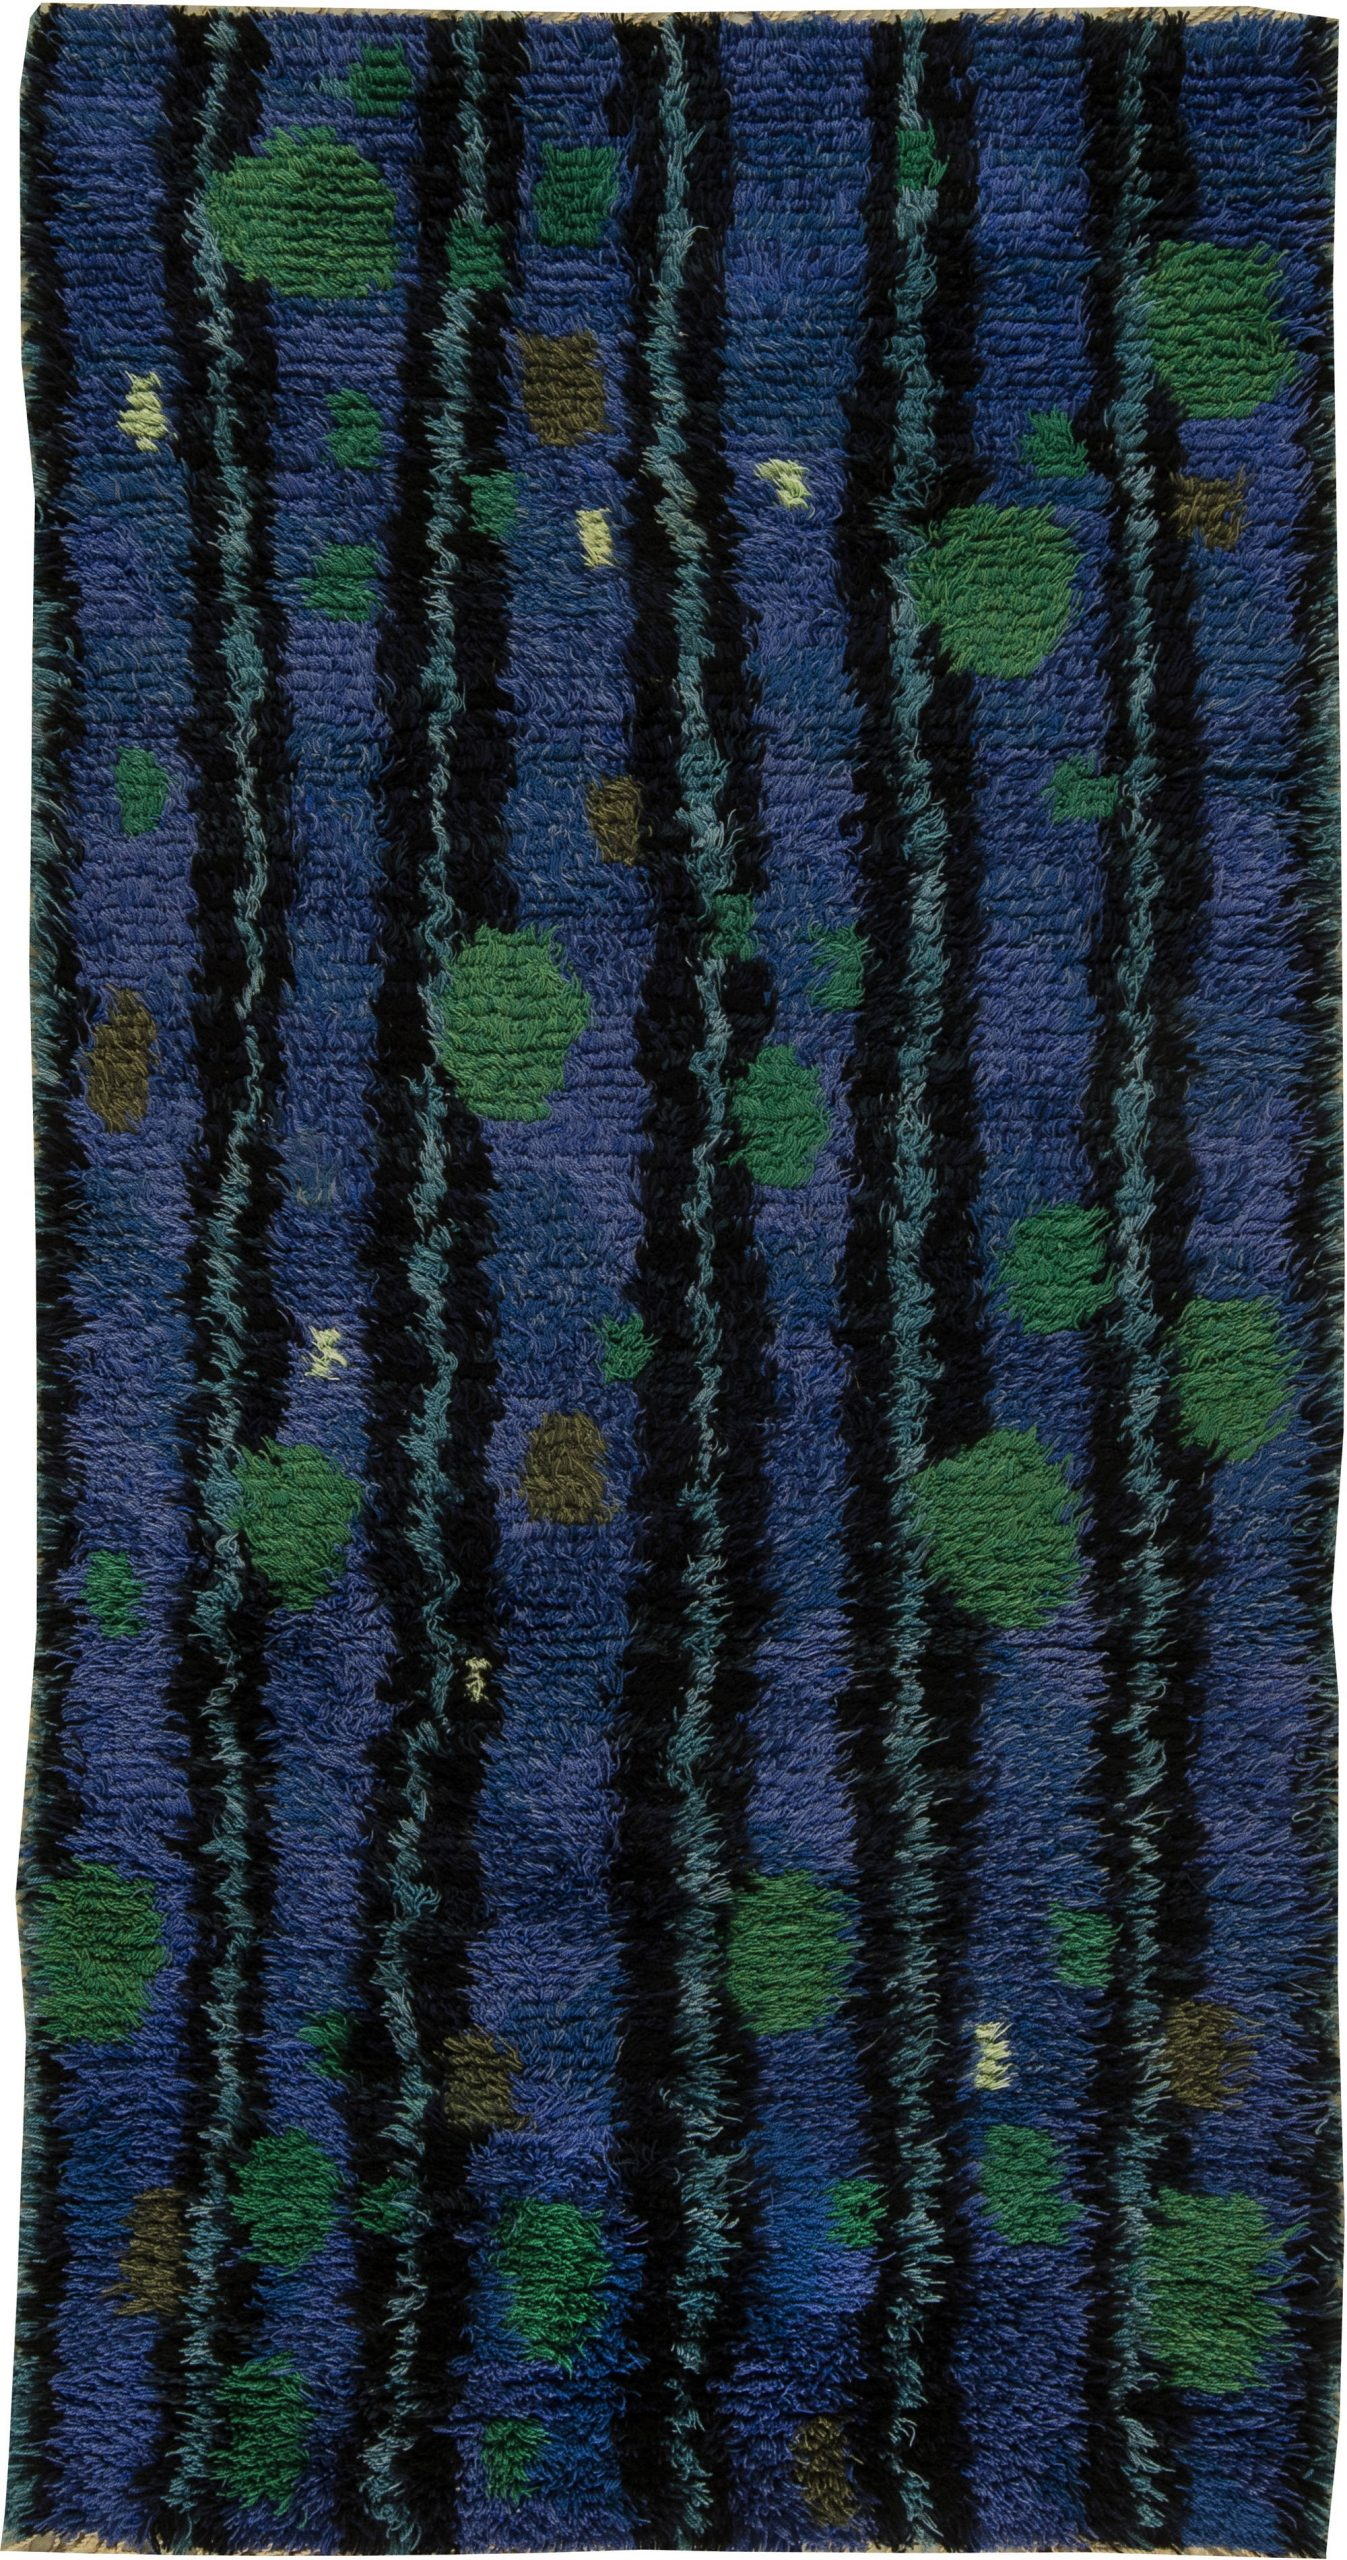 Picture of: Mid Century Modern Swedish Rya Rug In Lapis Blue Emerald Green And Black Bb6396 By Dlb